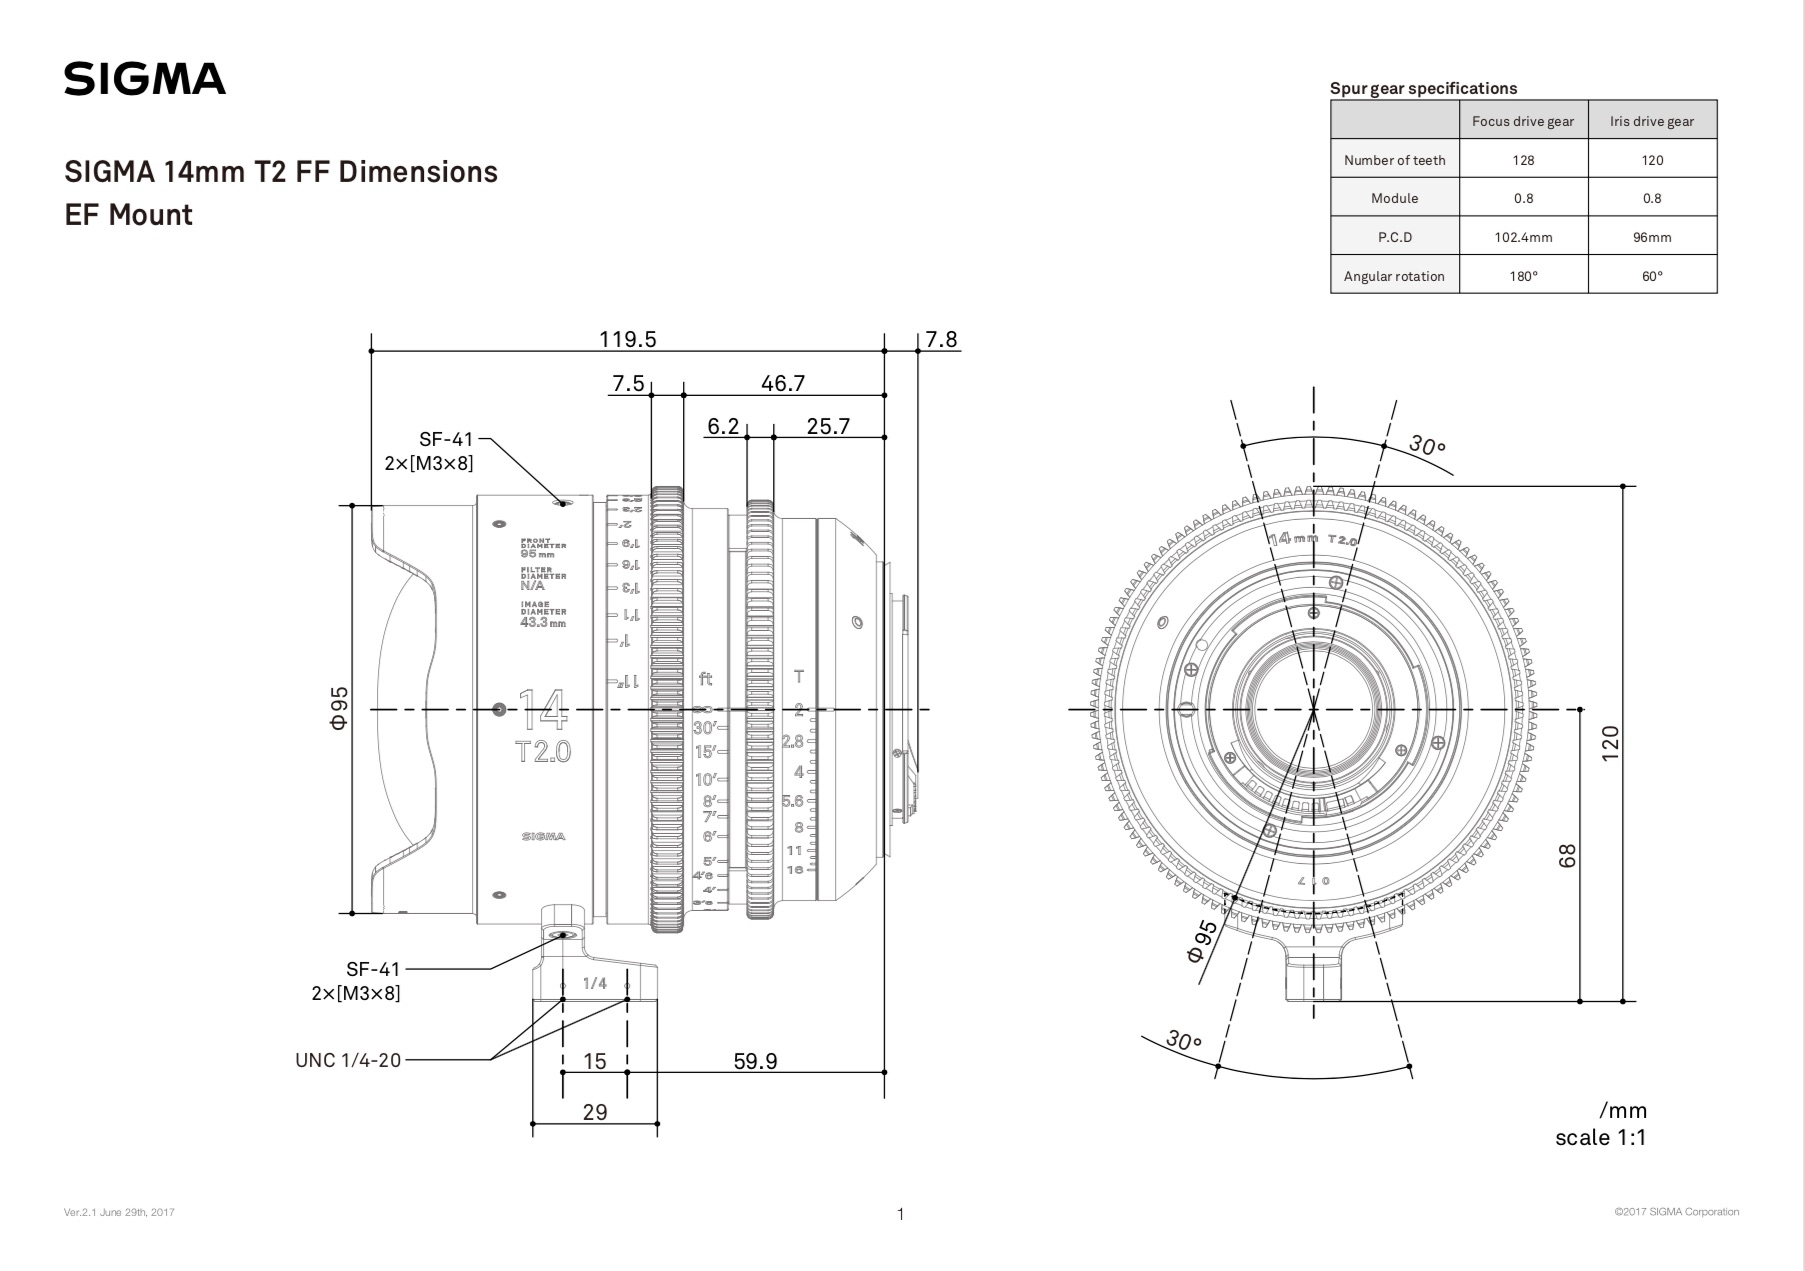 Dimensional drawing for the prime that I shot with the most, the 14mm T2 FF. Note that both the focus and iris rings have pitched teeth for remote controllability with manual or automated gearing systems.